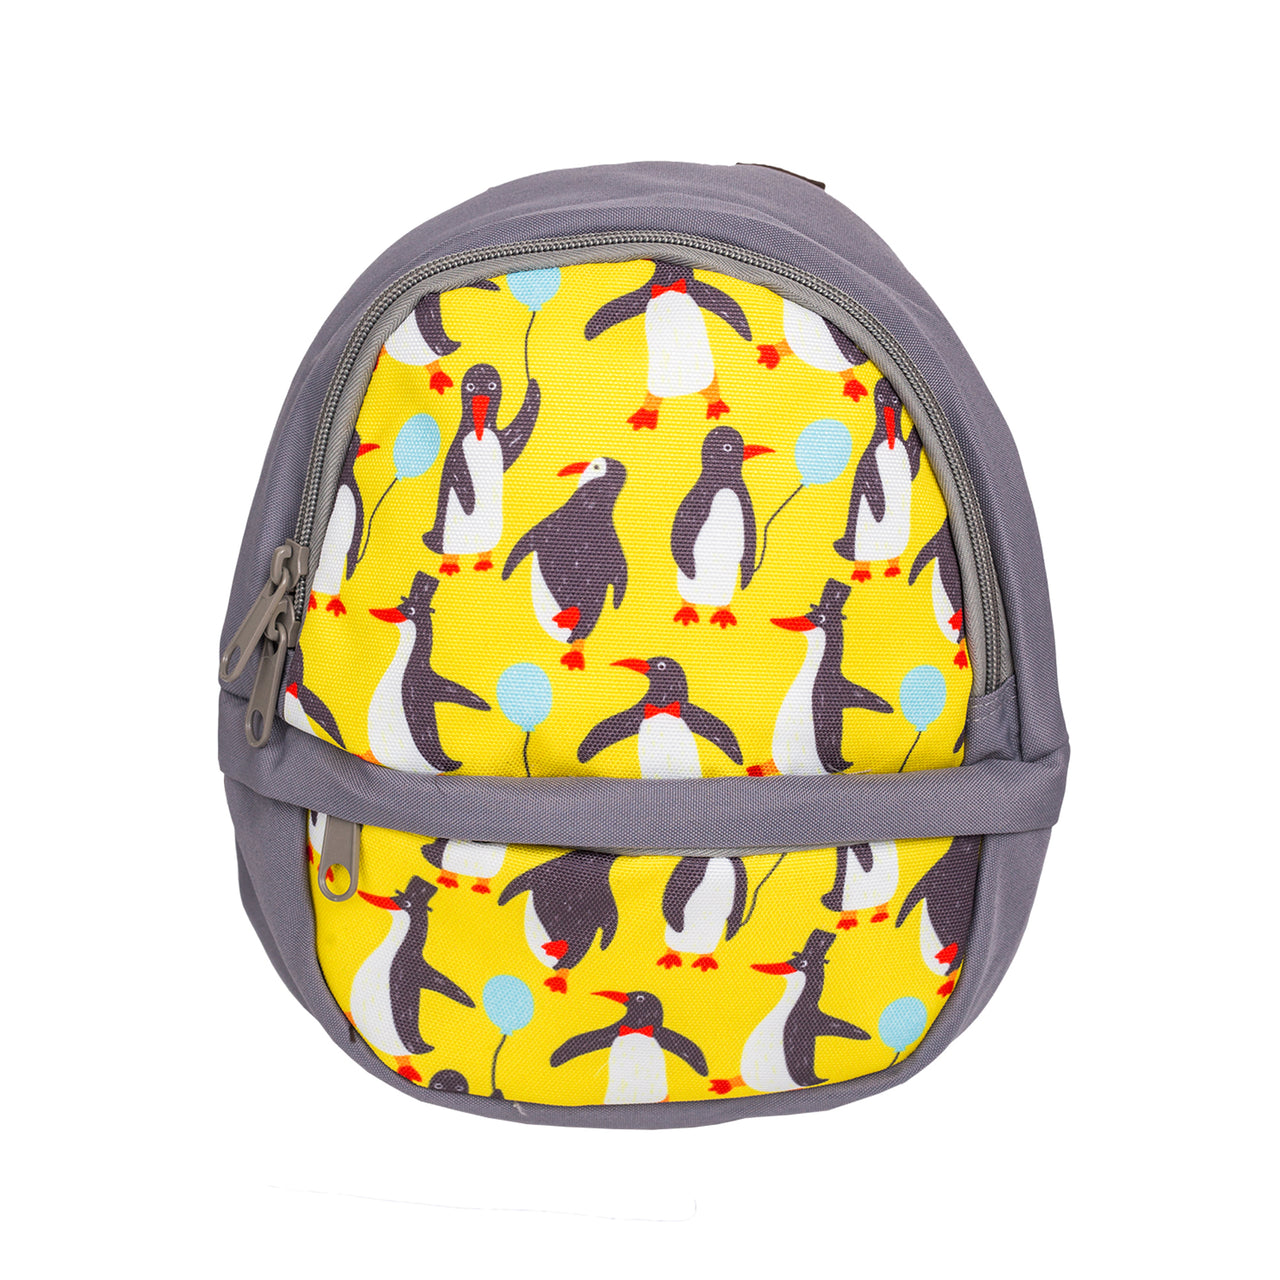 Printed Penguin Backpack - Grey